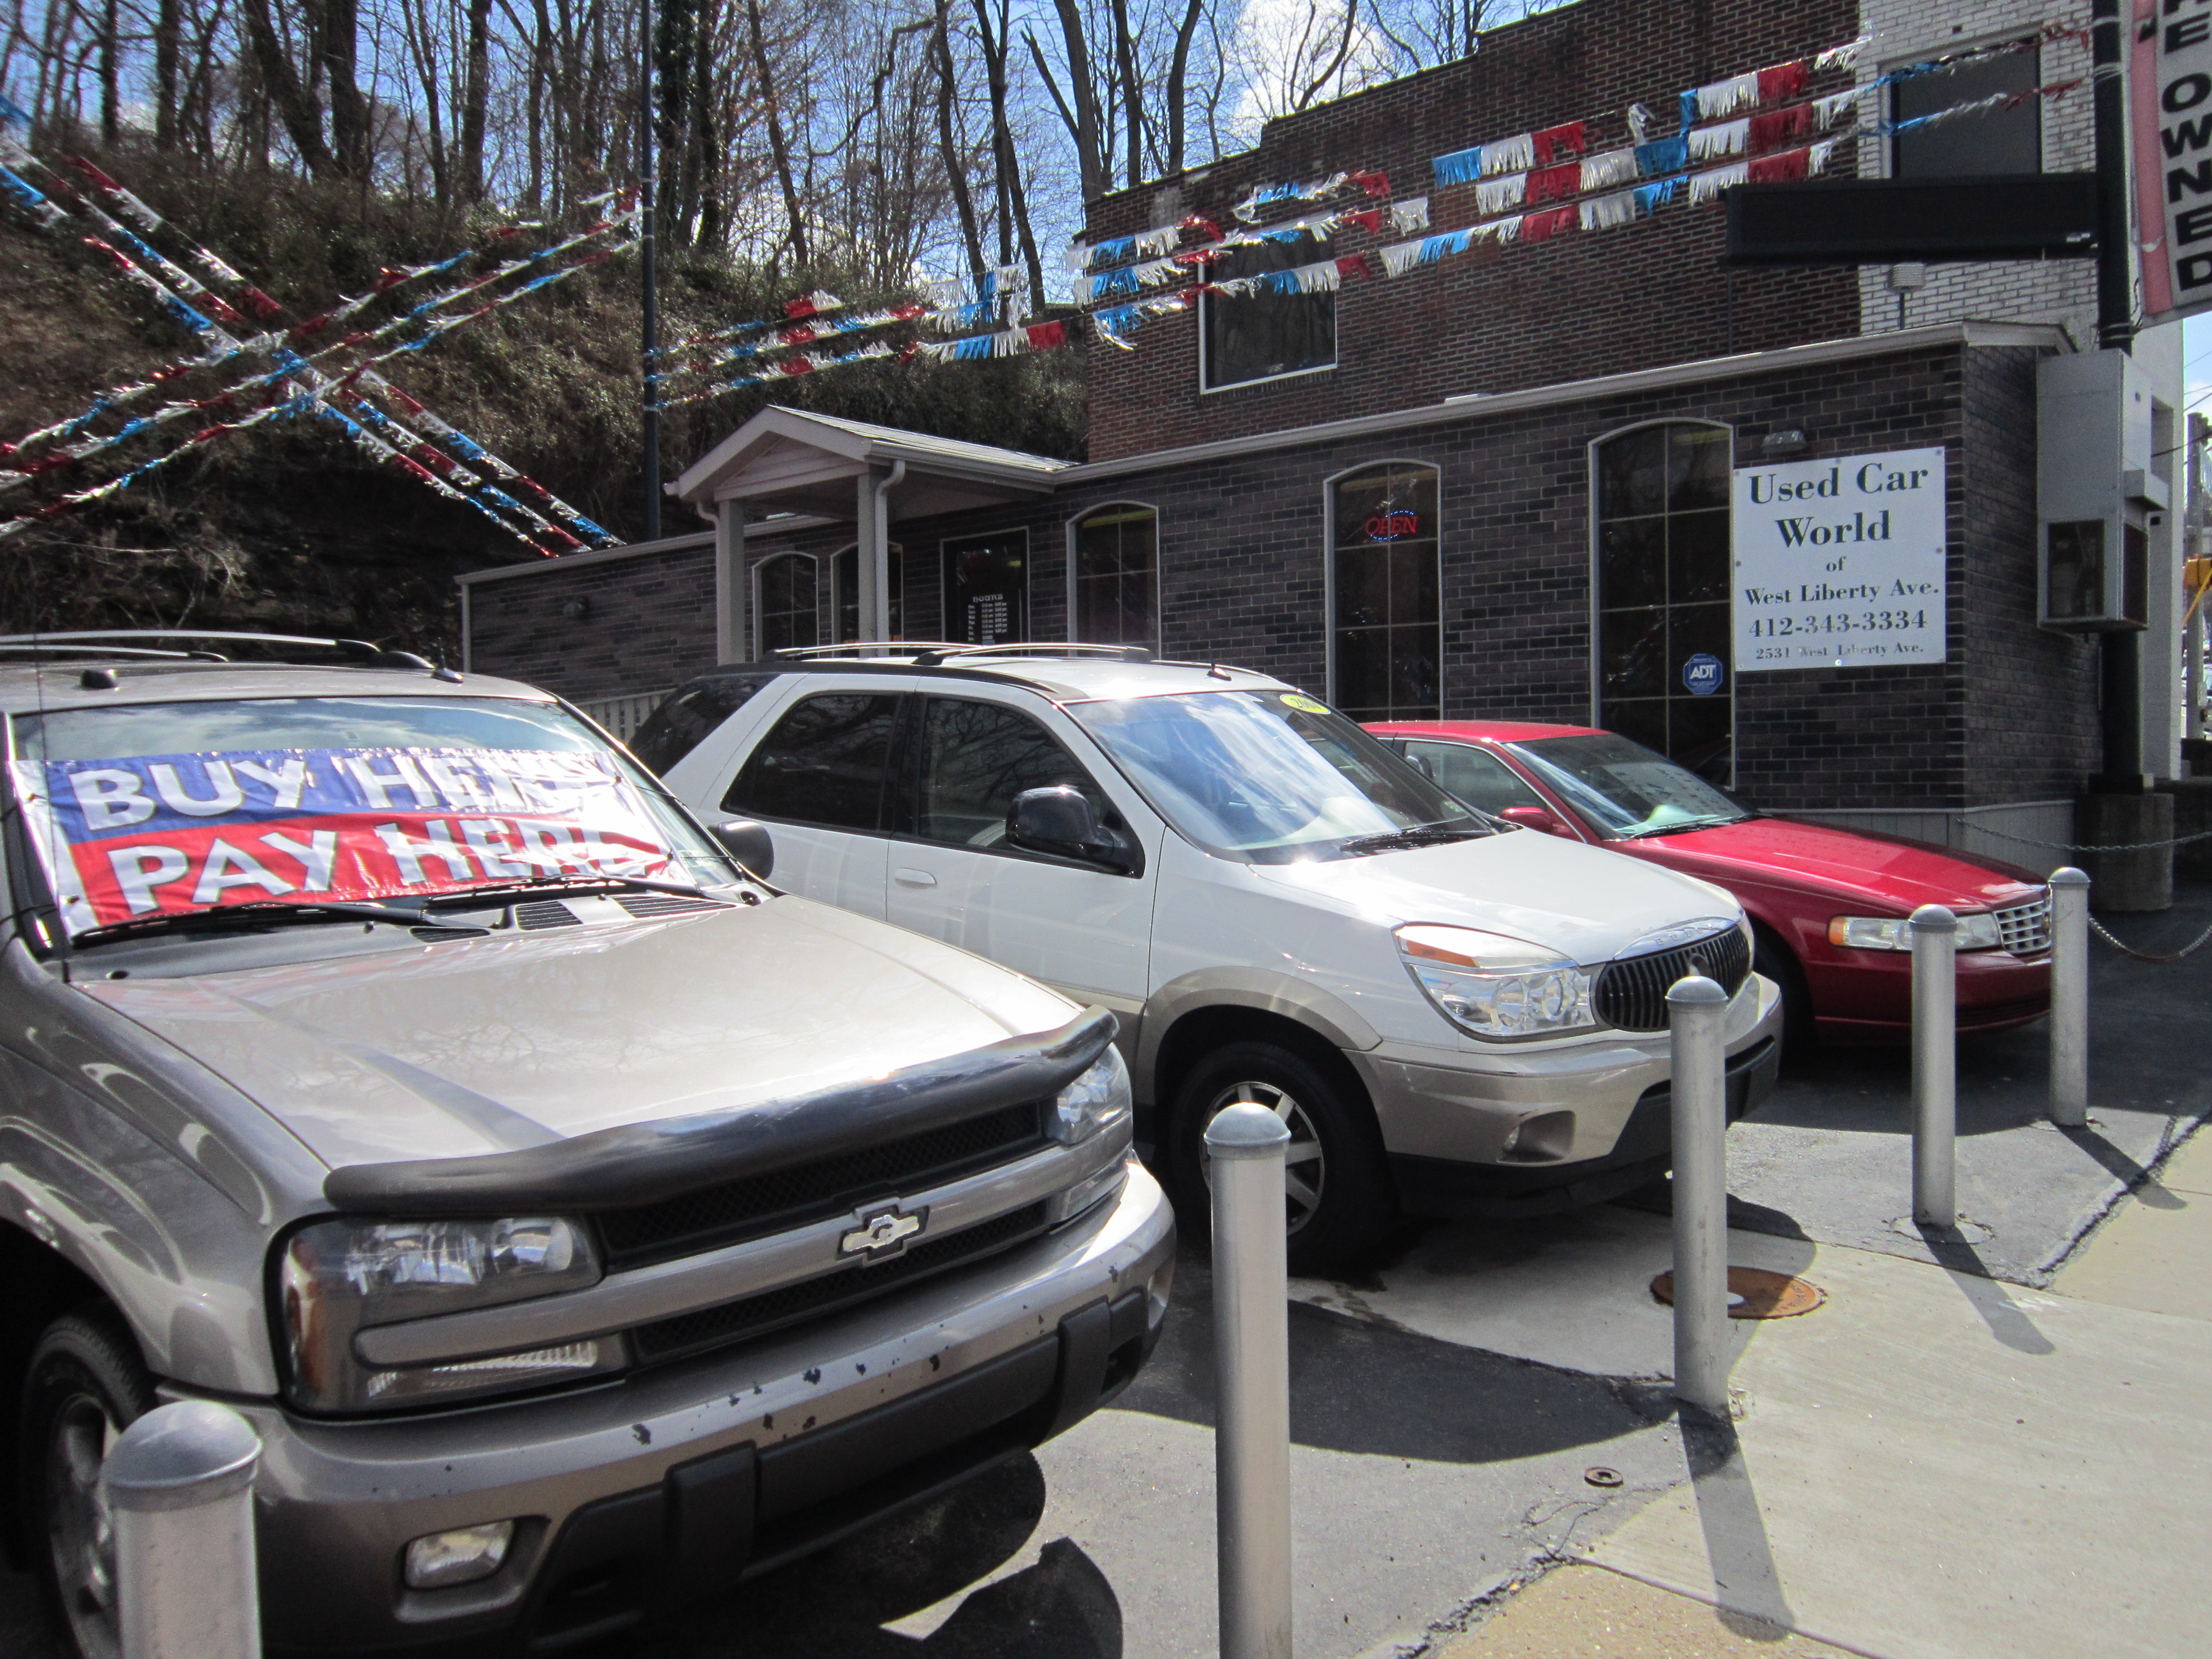 used car world of west liberty 2531 w liberty ave pittsburgh pa yp